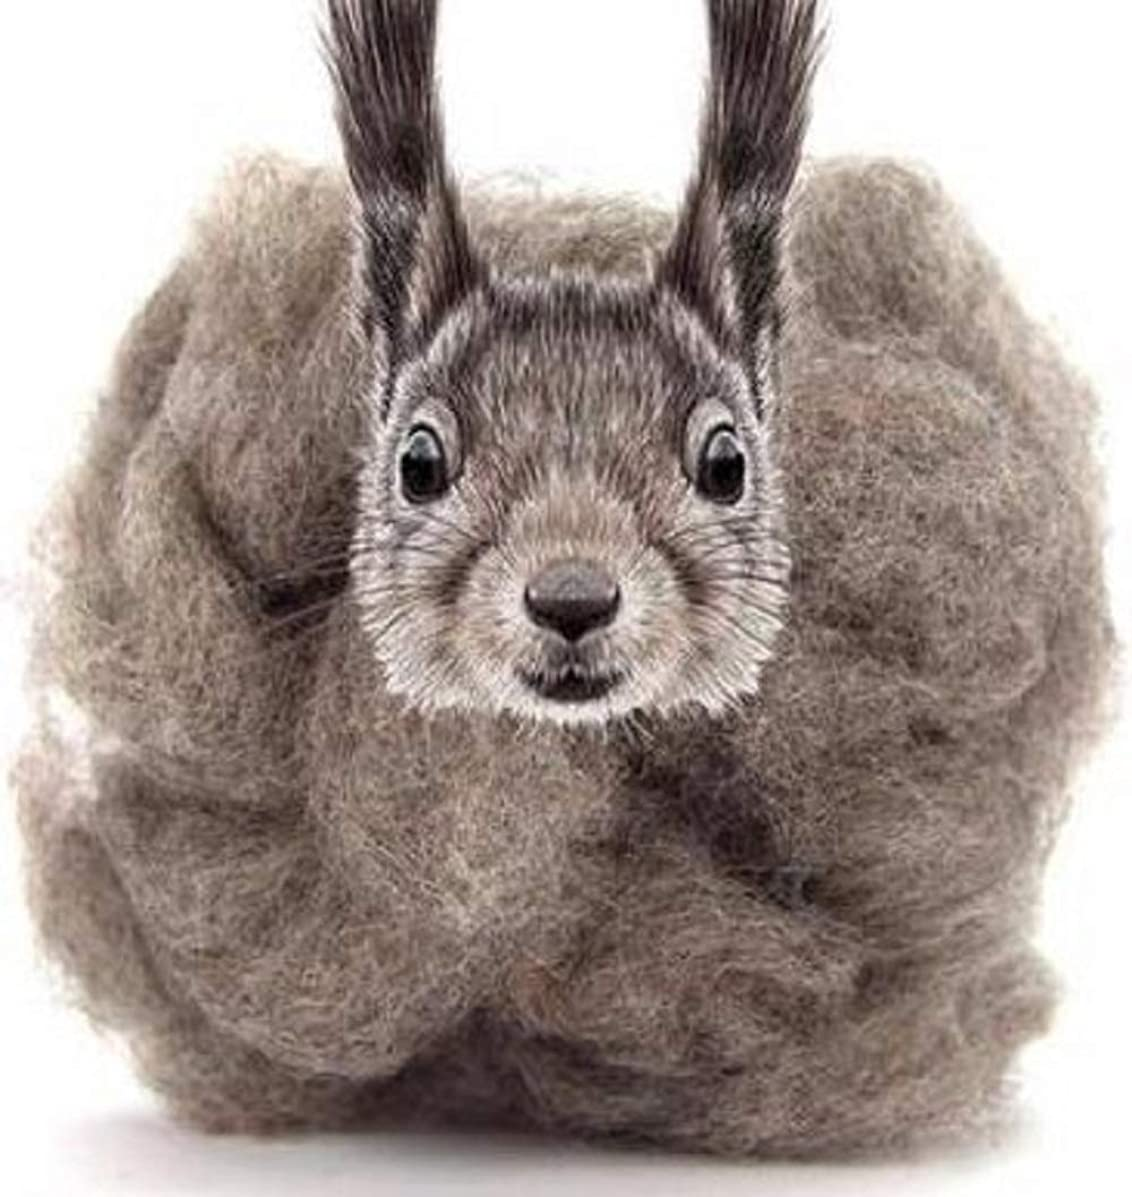 4 oz Paradise Fibers Carded Corriedale Wool Sliver - Squirrel Gray - Perfect for Woolen Yarn & Needle Felting